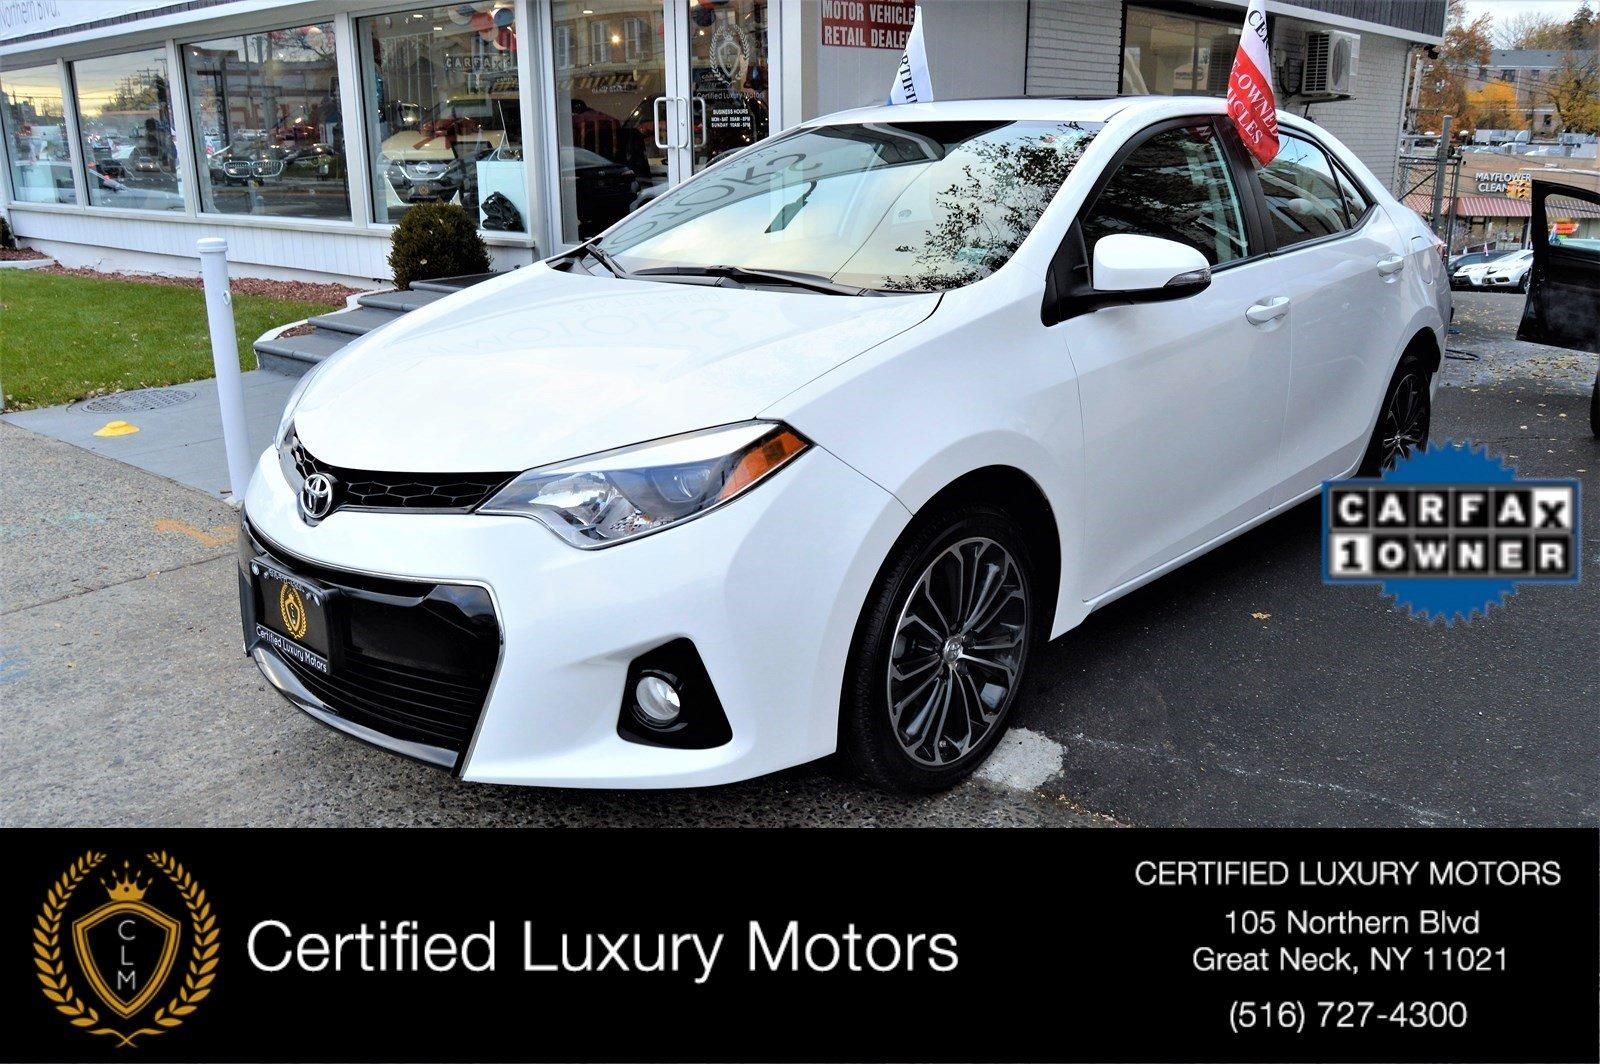 2015 toyota corolla s premium stock 7956 for sale near great neck ny ny toyota dealer. Black Bedroom Furniture Sets. Home Design Ideas